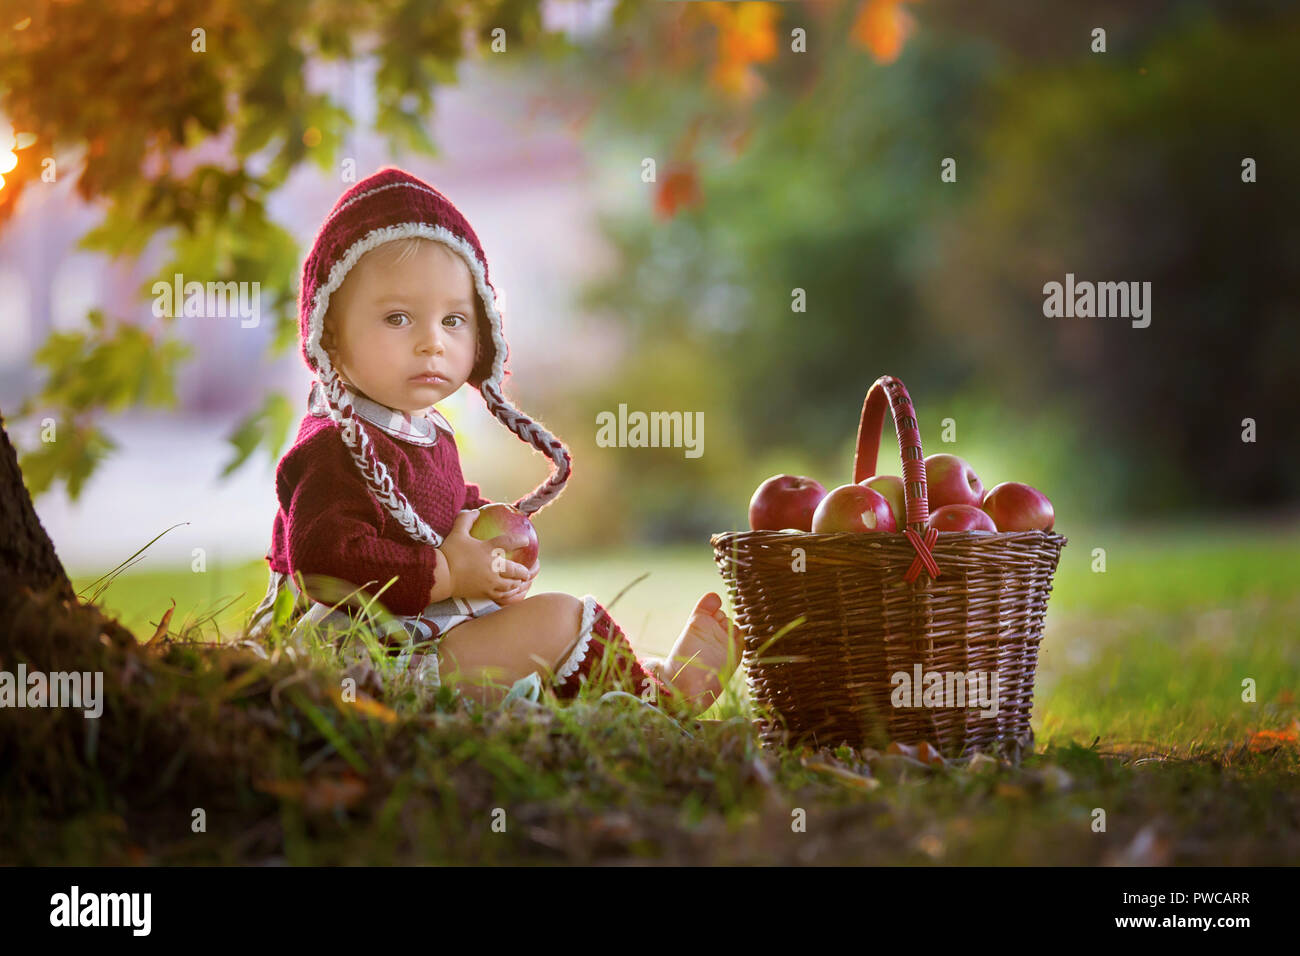 Child eating apples in a village in autumn little baby boy playing with apples kids pick fruit in a basket toddler eating fruits at fall harvest o